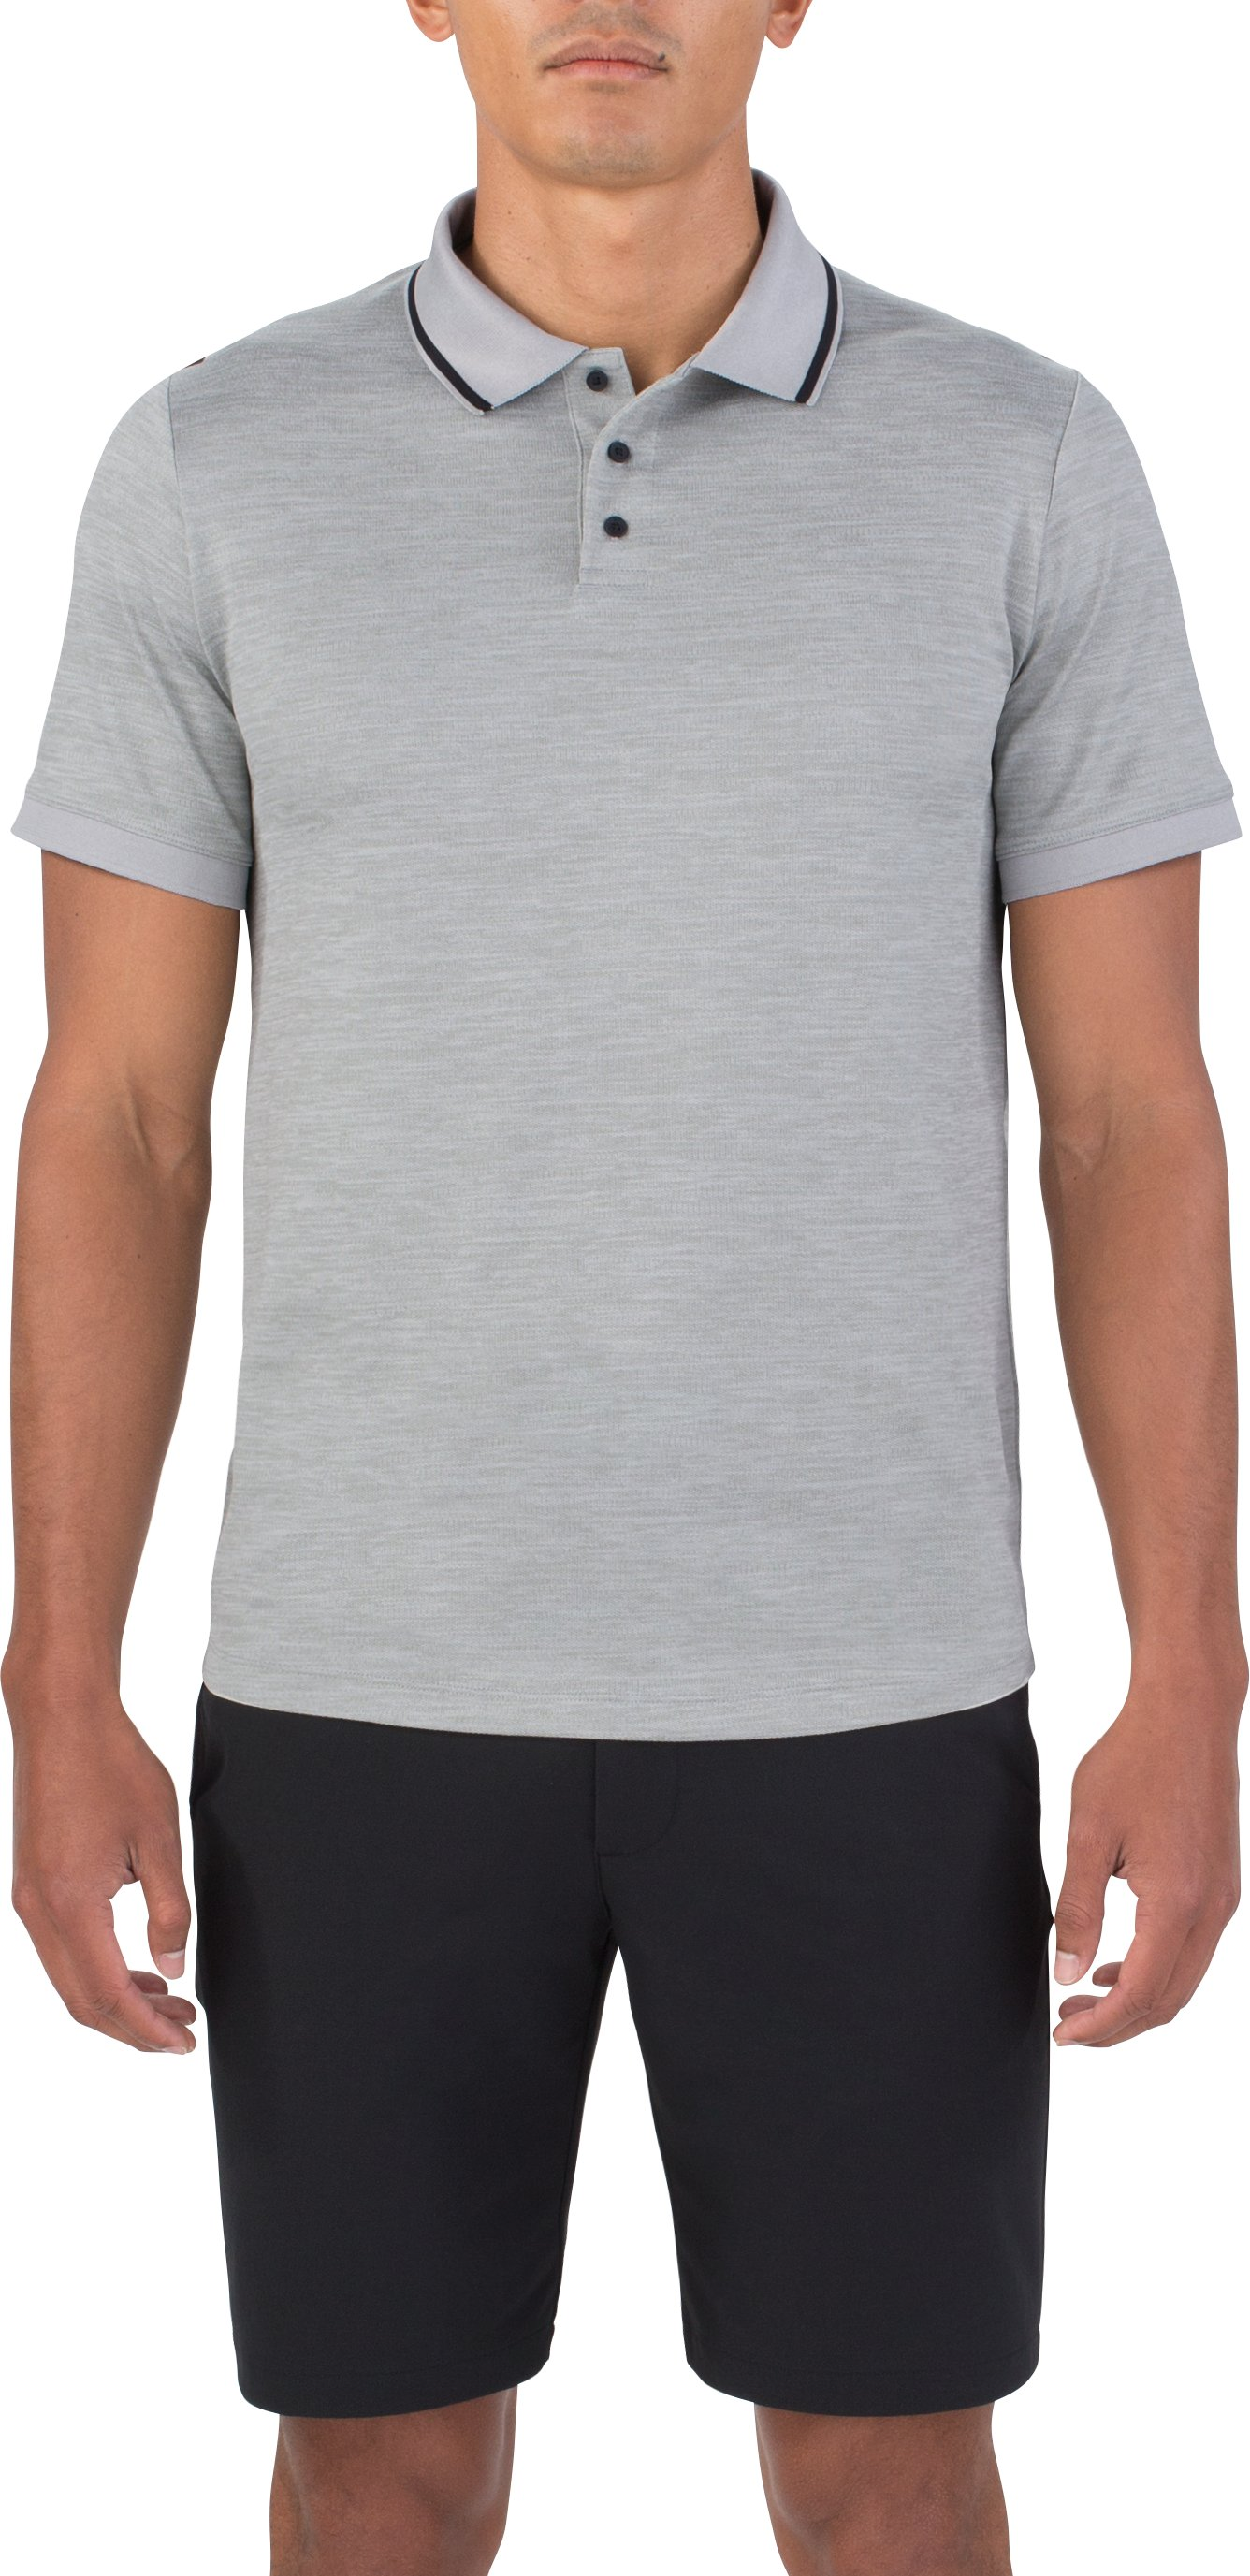 Men's UAS Pique Short Sleeve Polo, LIGHT HEATHER GRAY